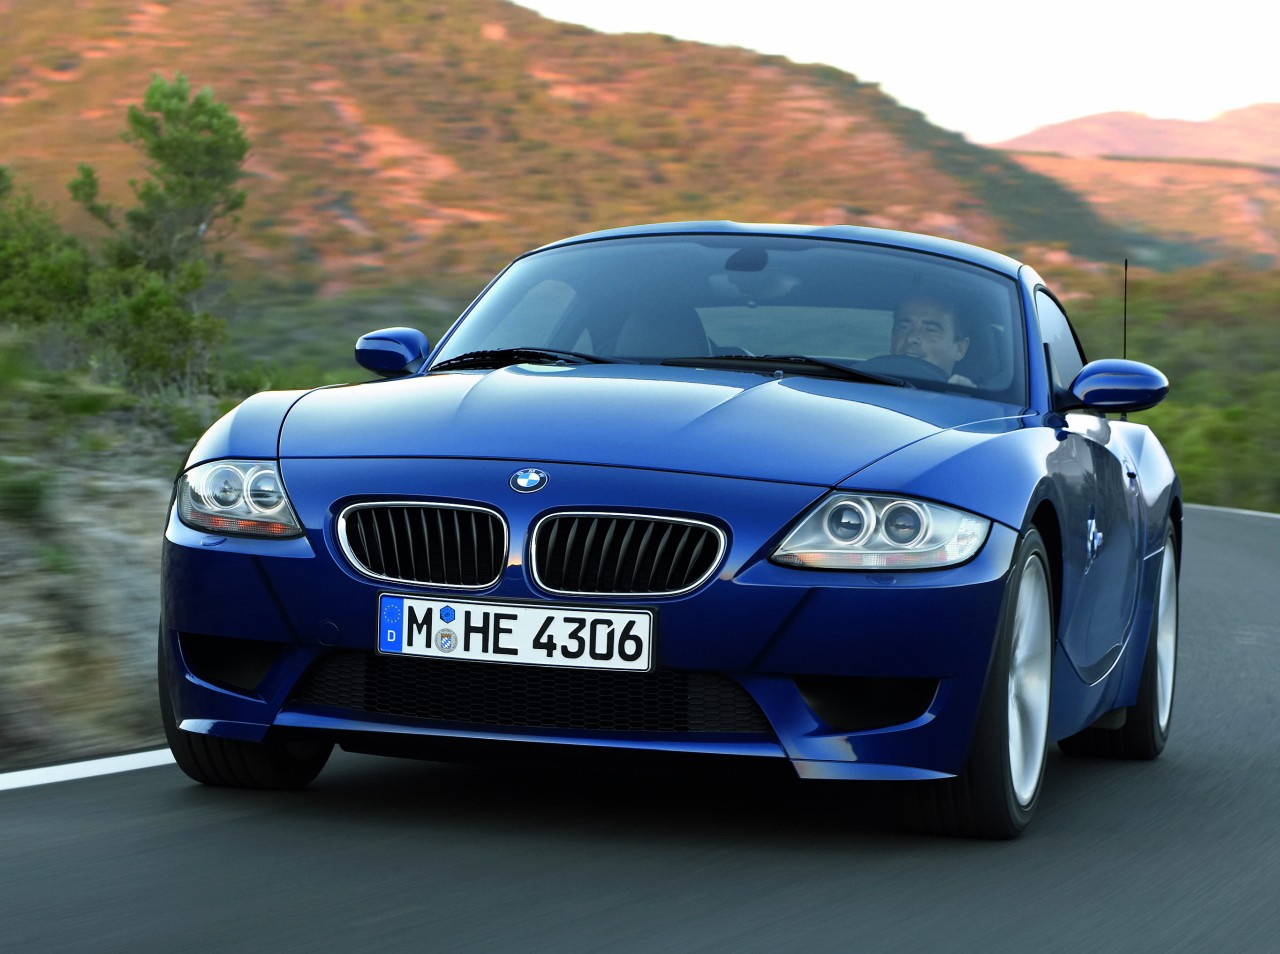 Bmw cars usa Cars Wallpapers And Pictures car imagescar pics 1280x954